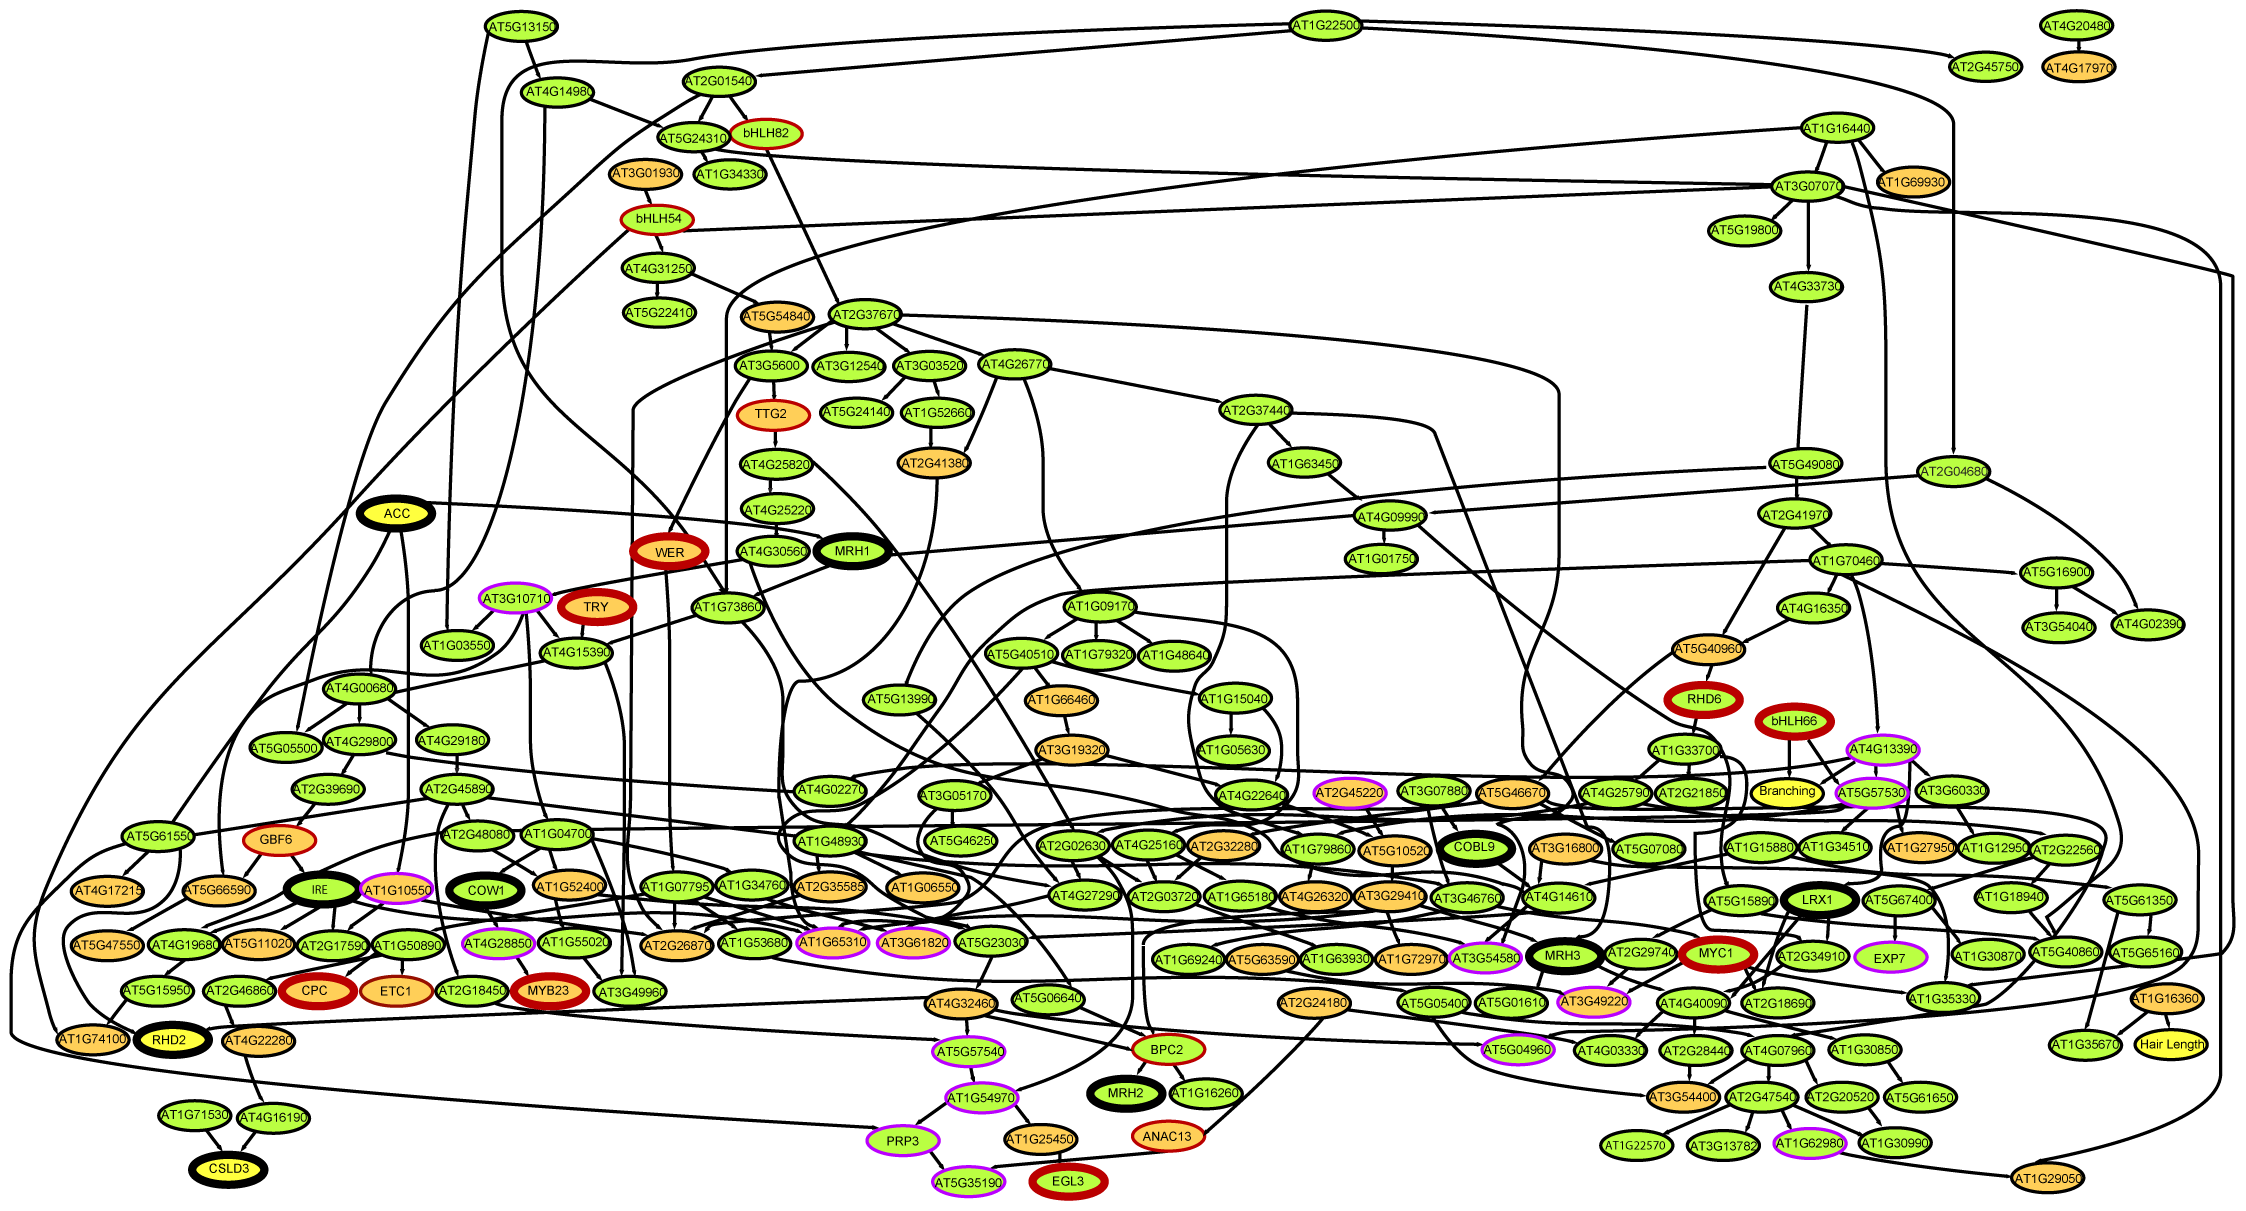 Bayesian modeling from root epidermal transcriptome data.